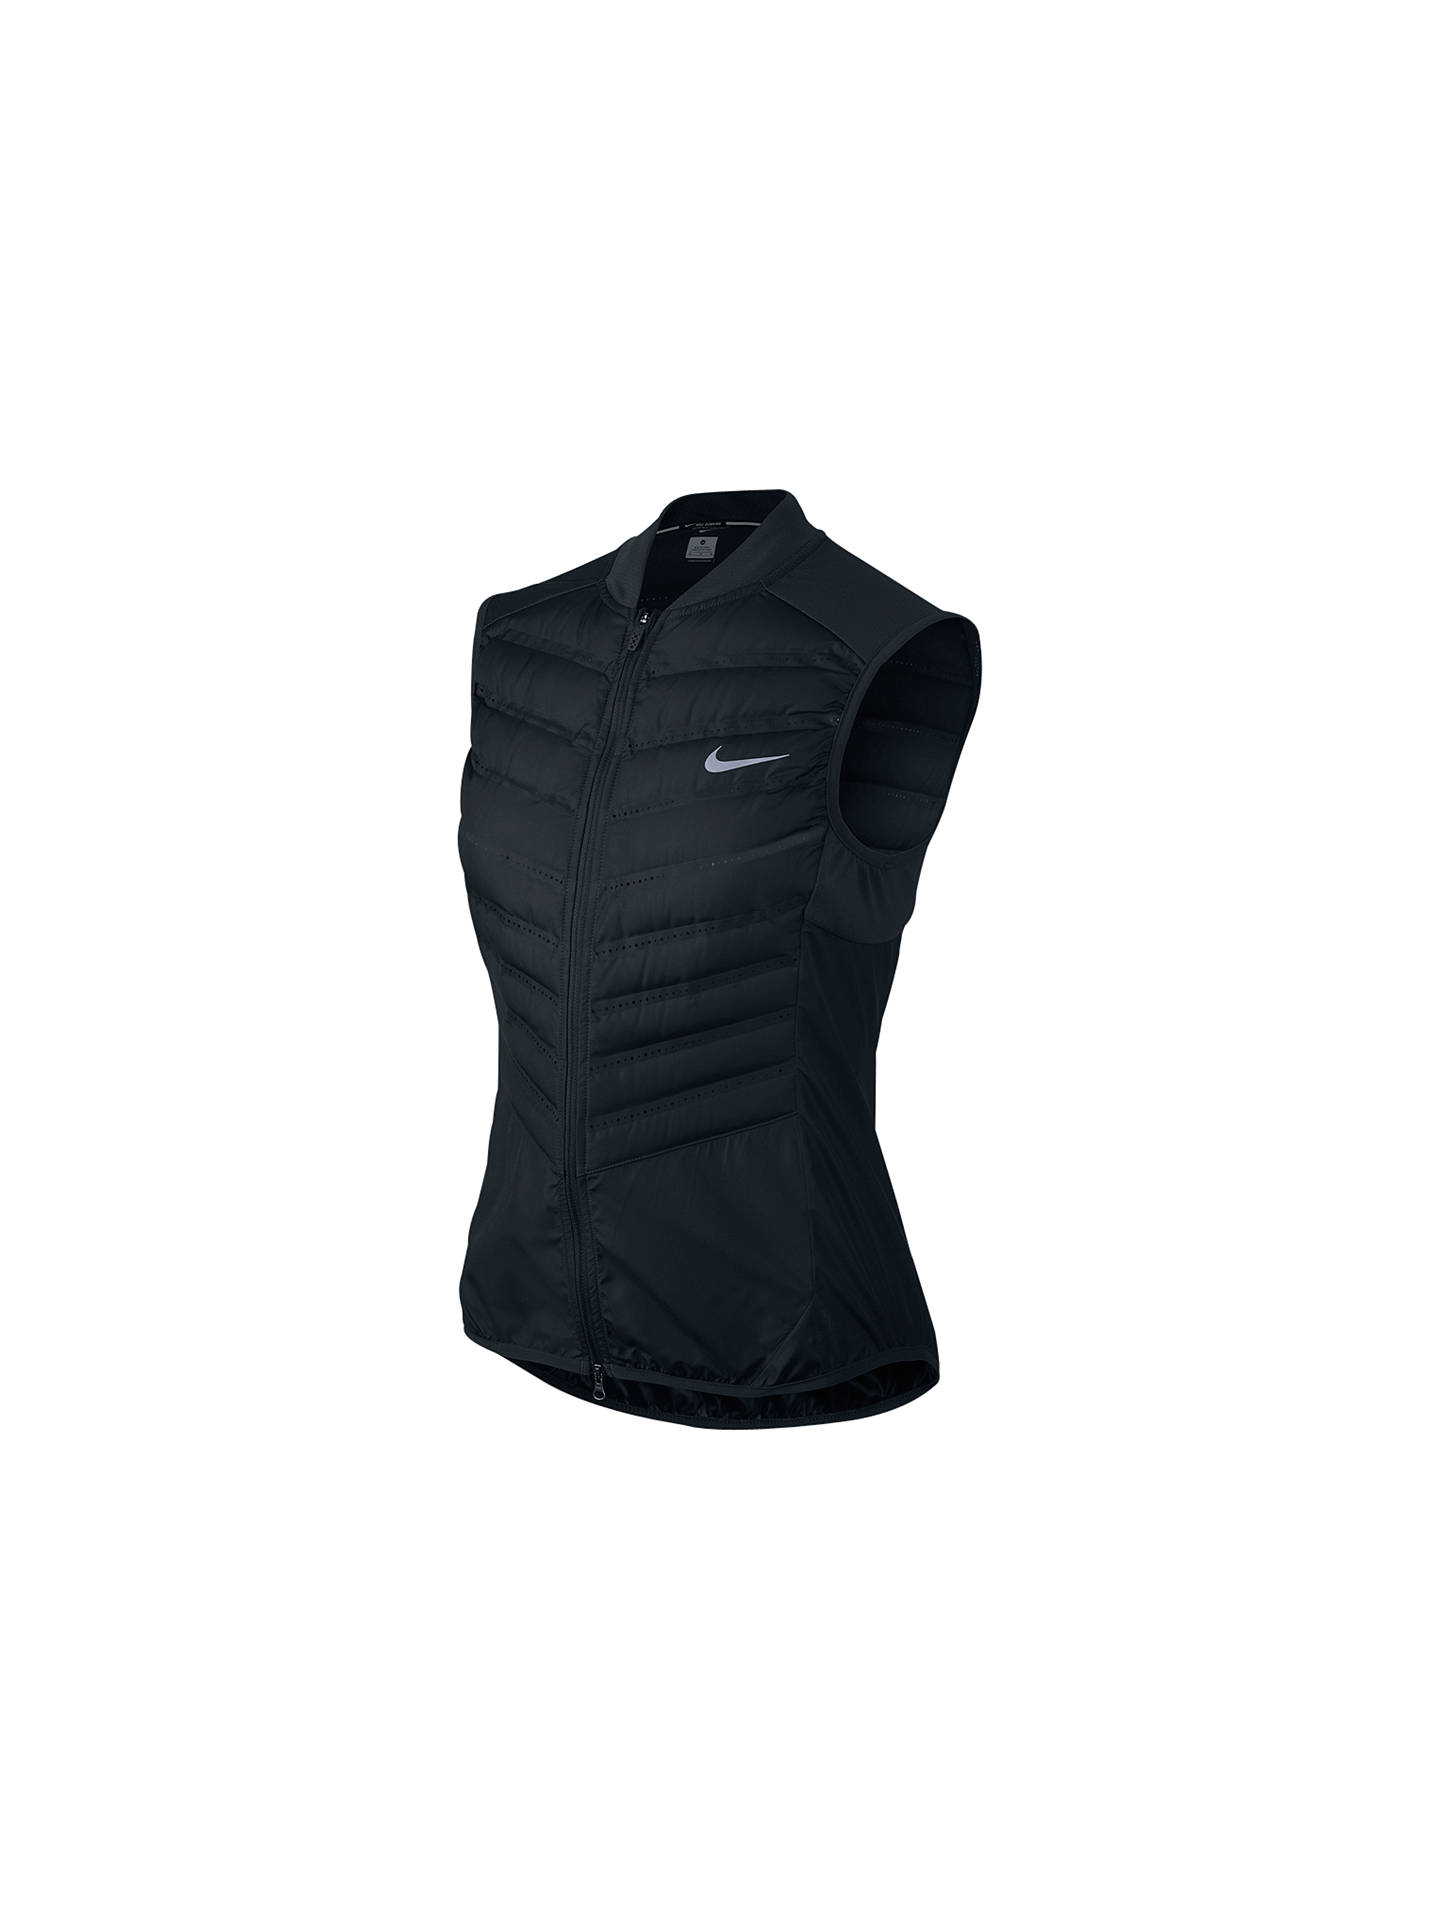 newest 39a0d 420e8 BuyNike Aeroloft 800 Running Gilet, Black, XS Online at johnlewis.com ...